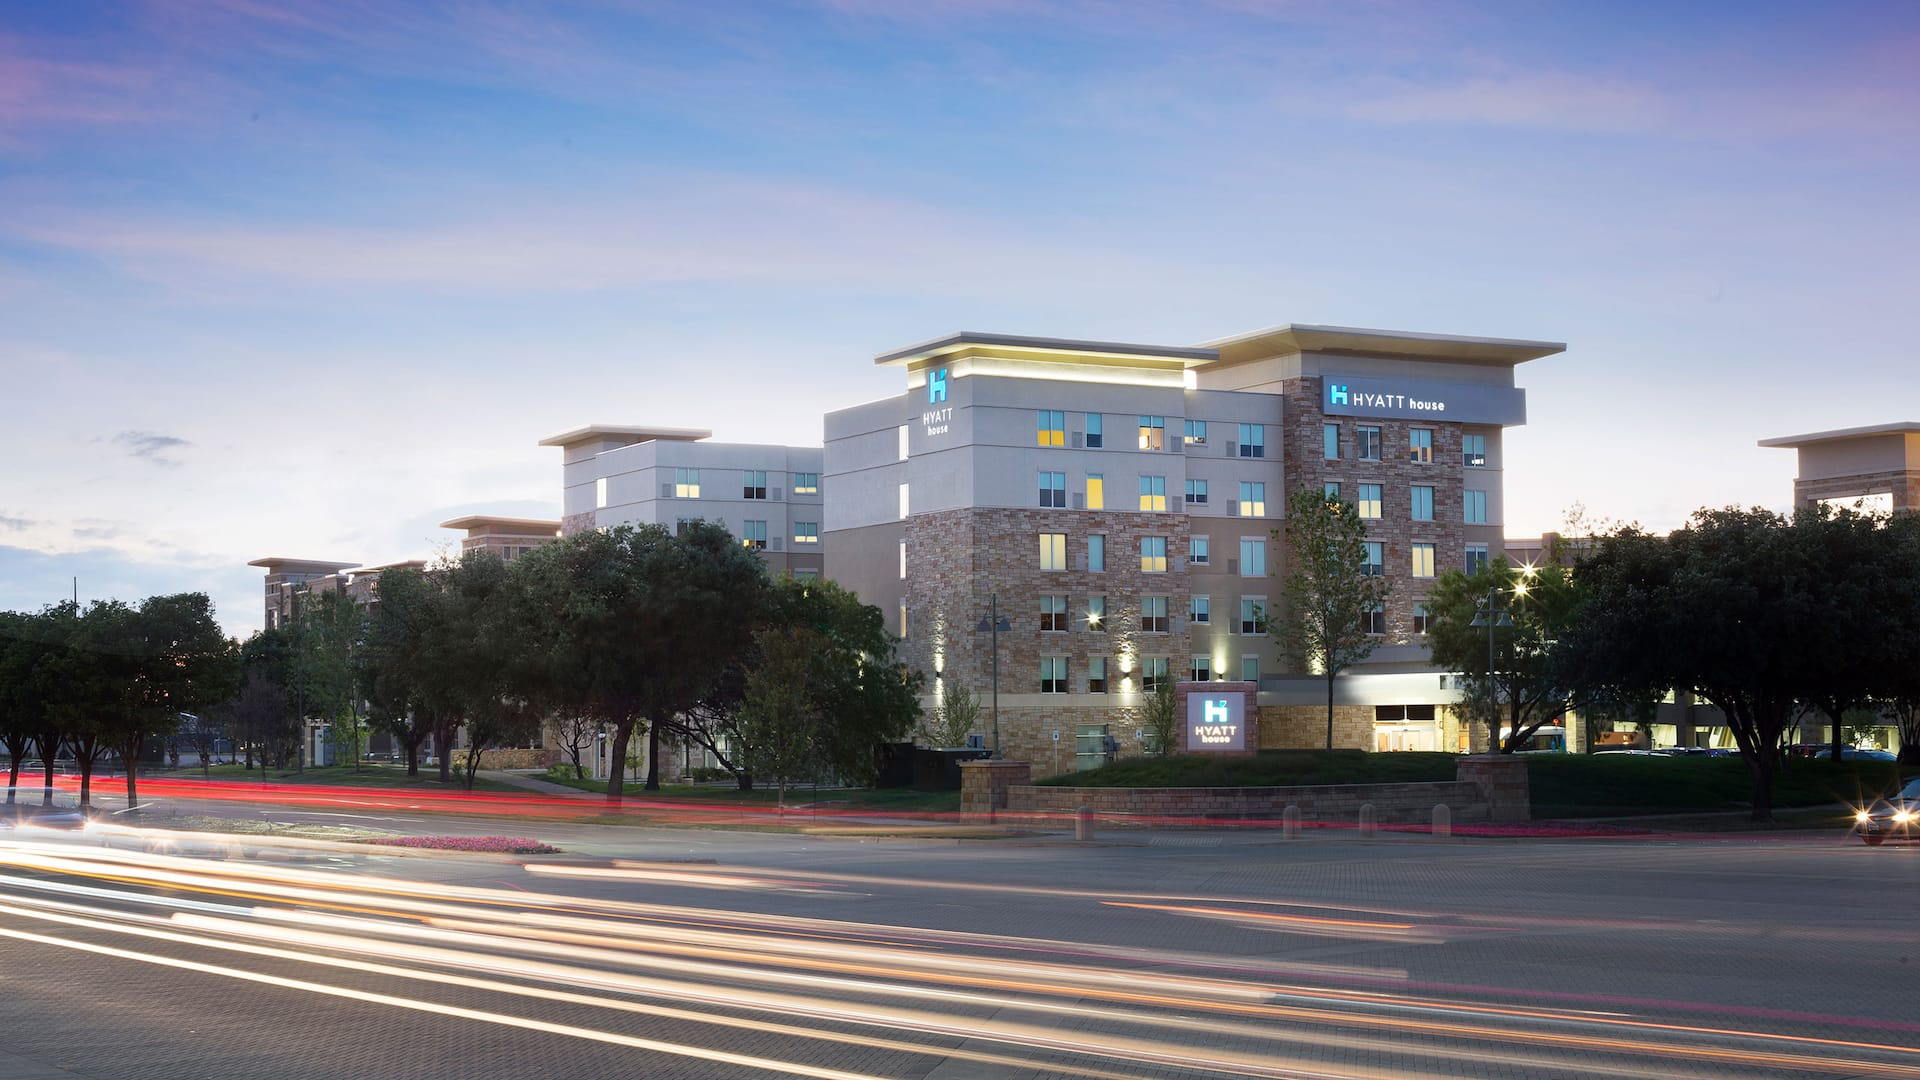 Extended Stay Pet Friendly Hotel In Frisco Tx Hyatt House Frisco